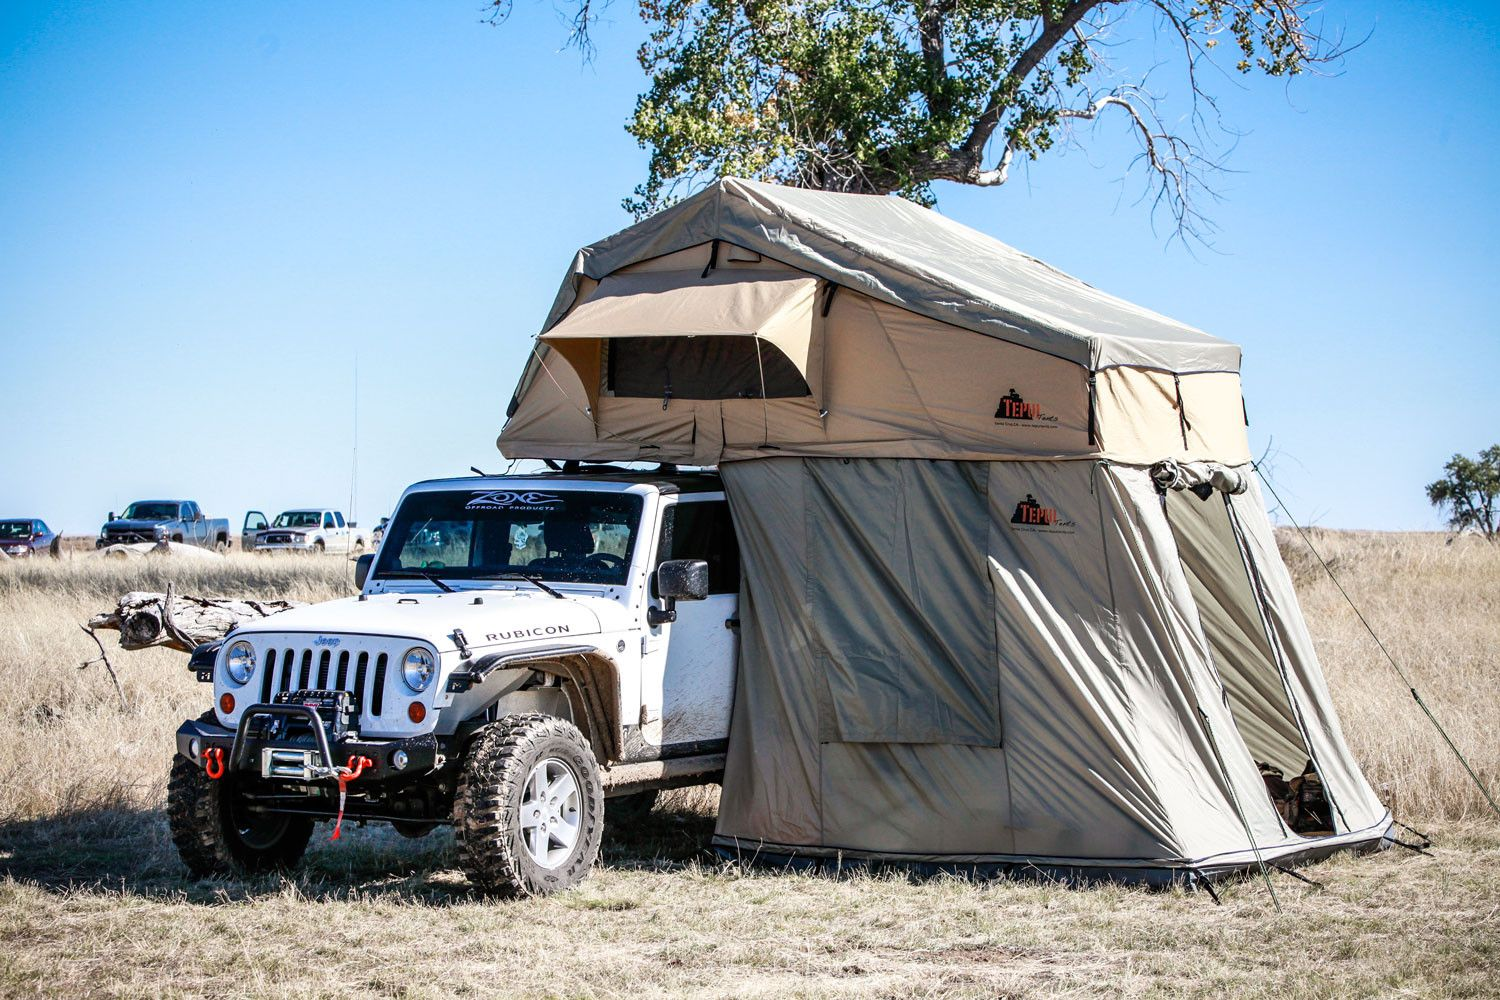 Tepui Autana Sky roof top tent with annex open front view. Car c&ing & Tepui Autana Sky roof top tent with annex open front view. Car ...